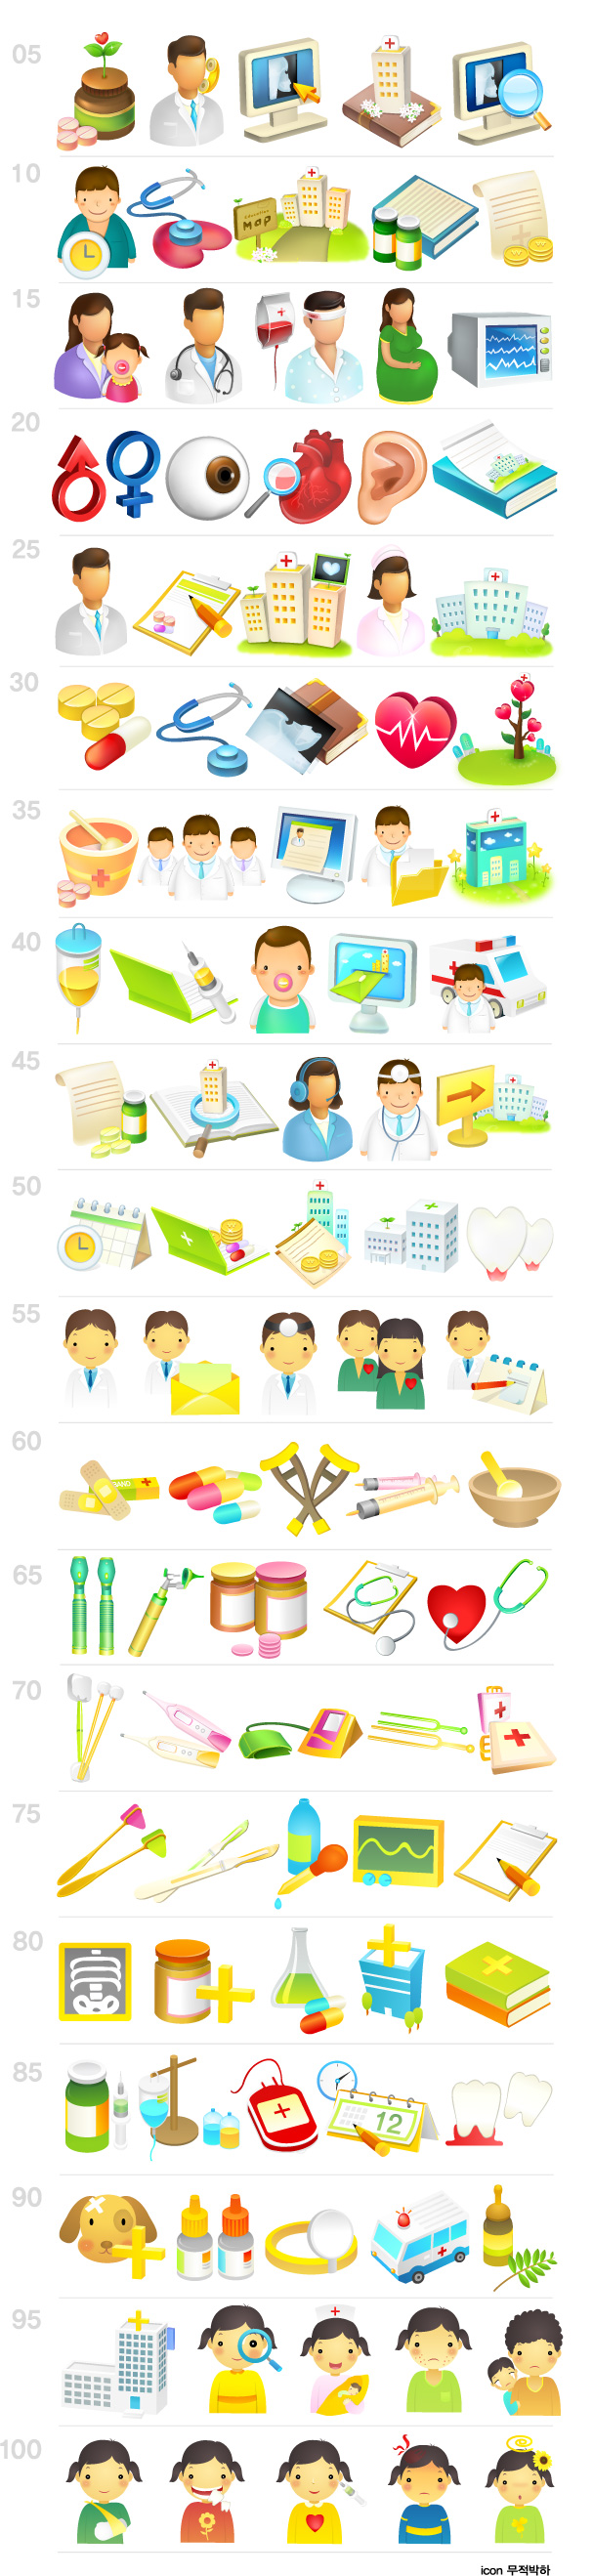 free vector Medical hospital icon vector material